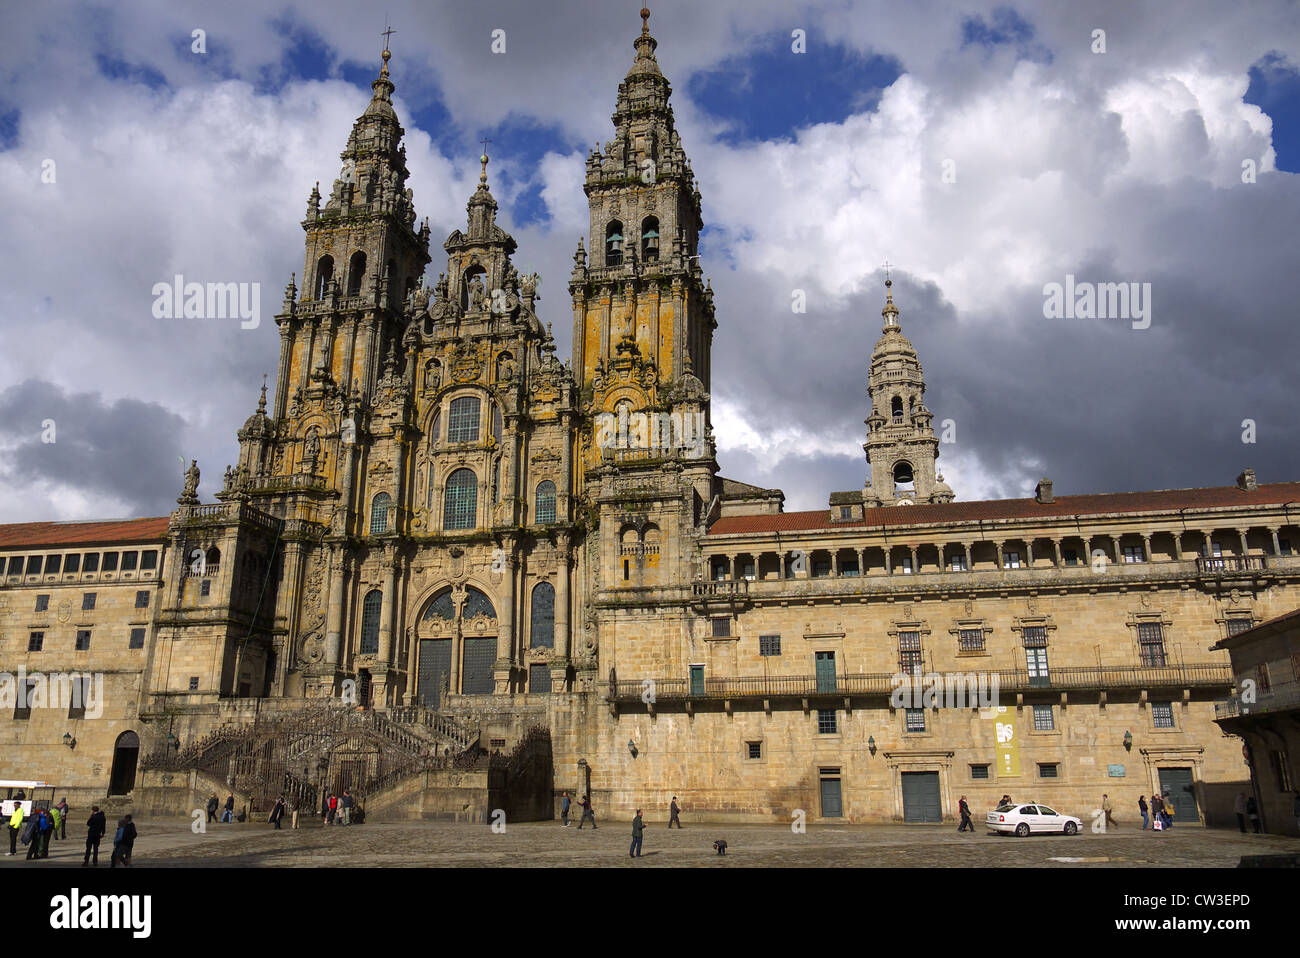 The Cathedral of St. James in Santiago de Compostela, Spain. - Stock Image